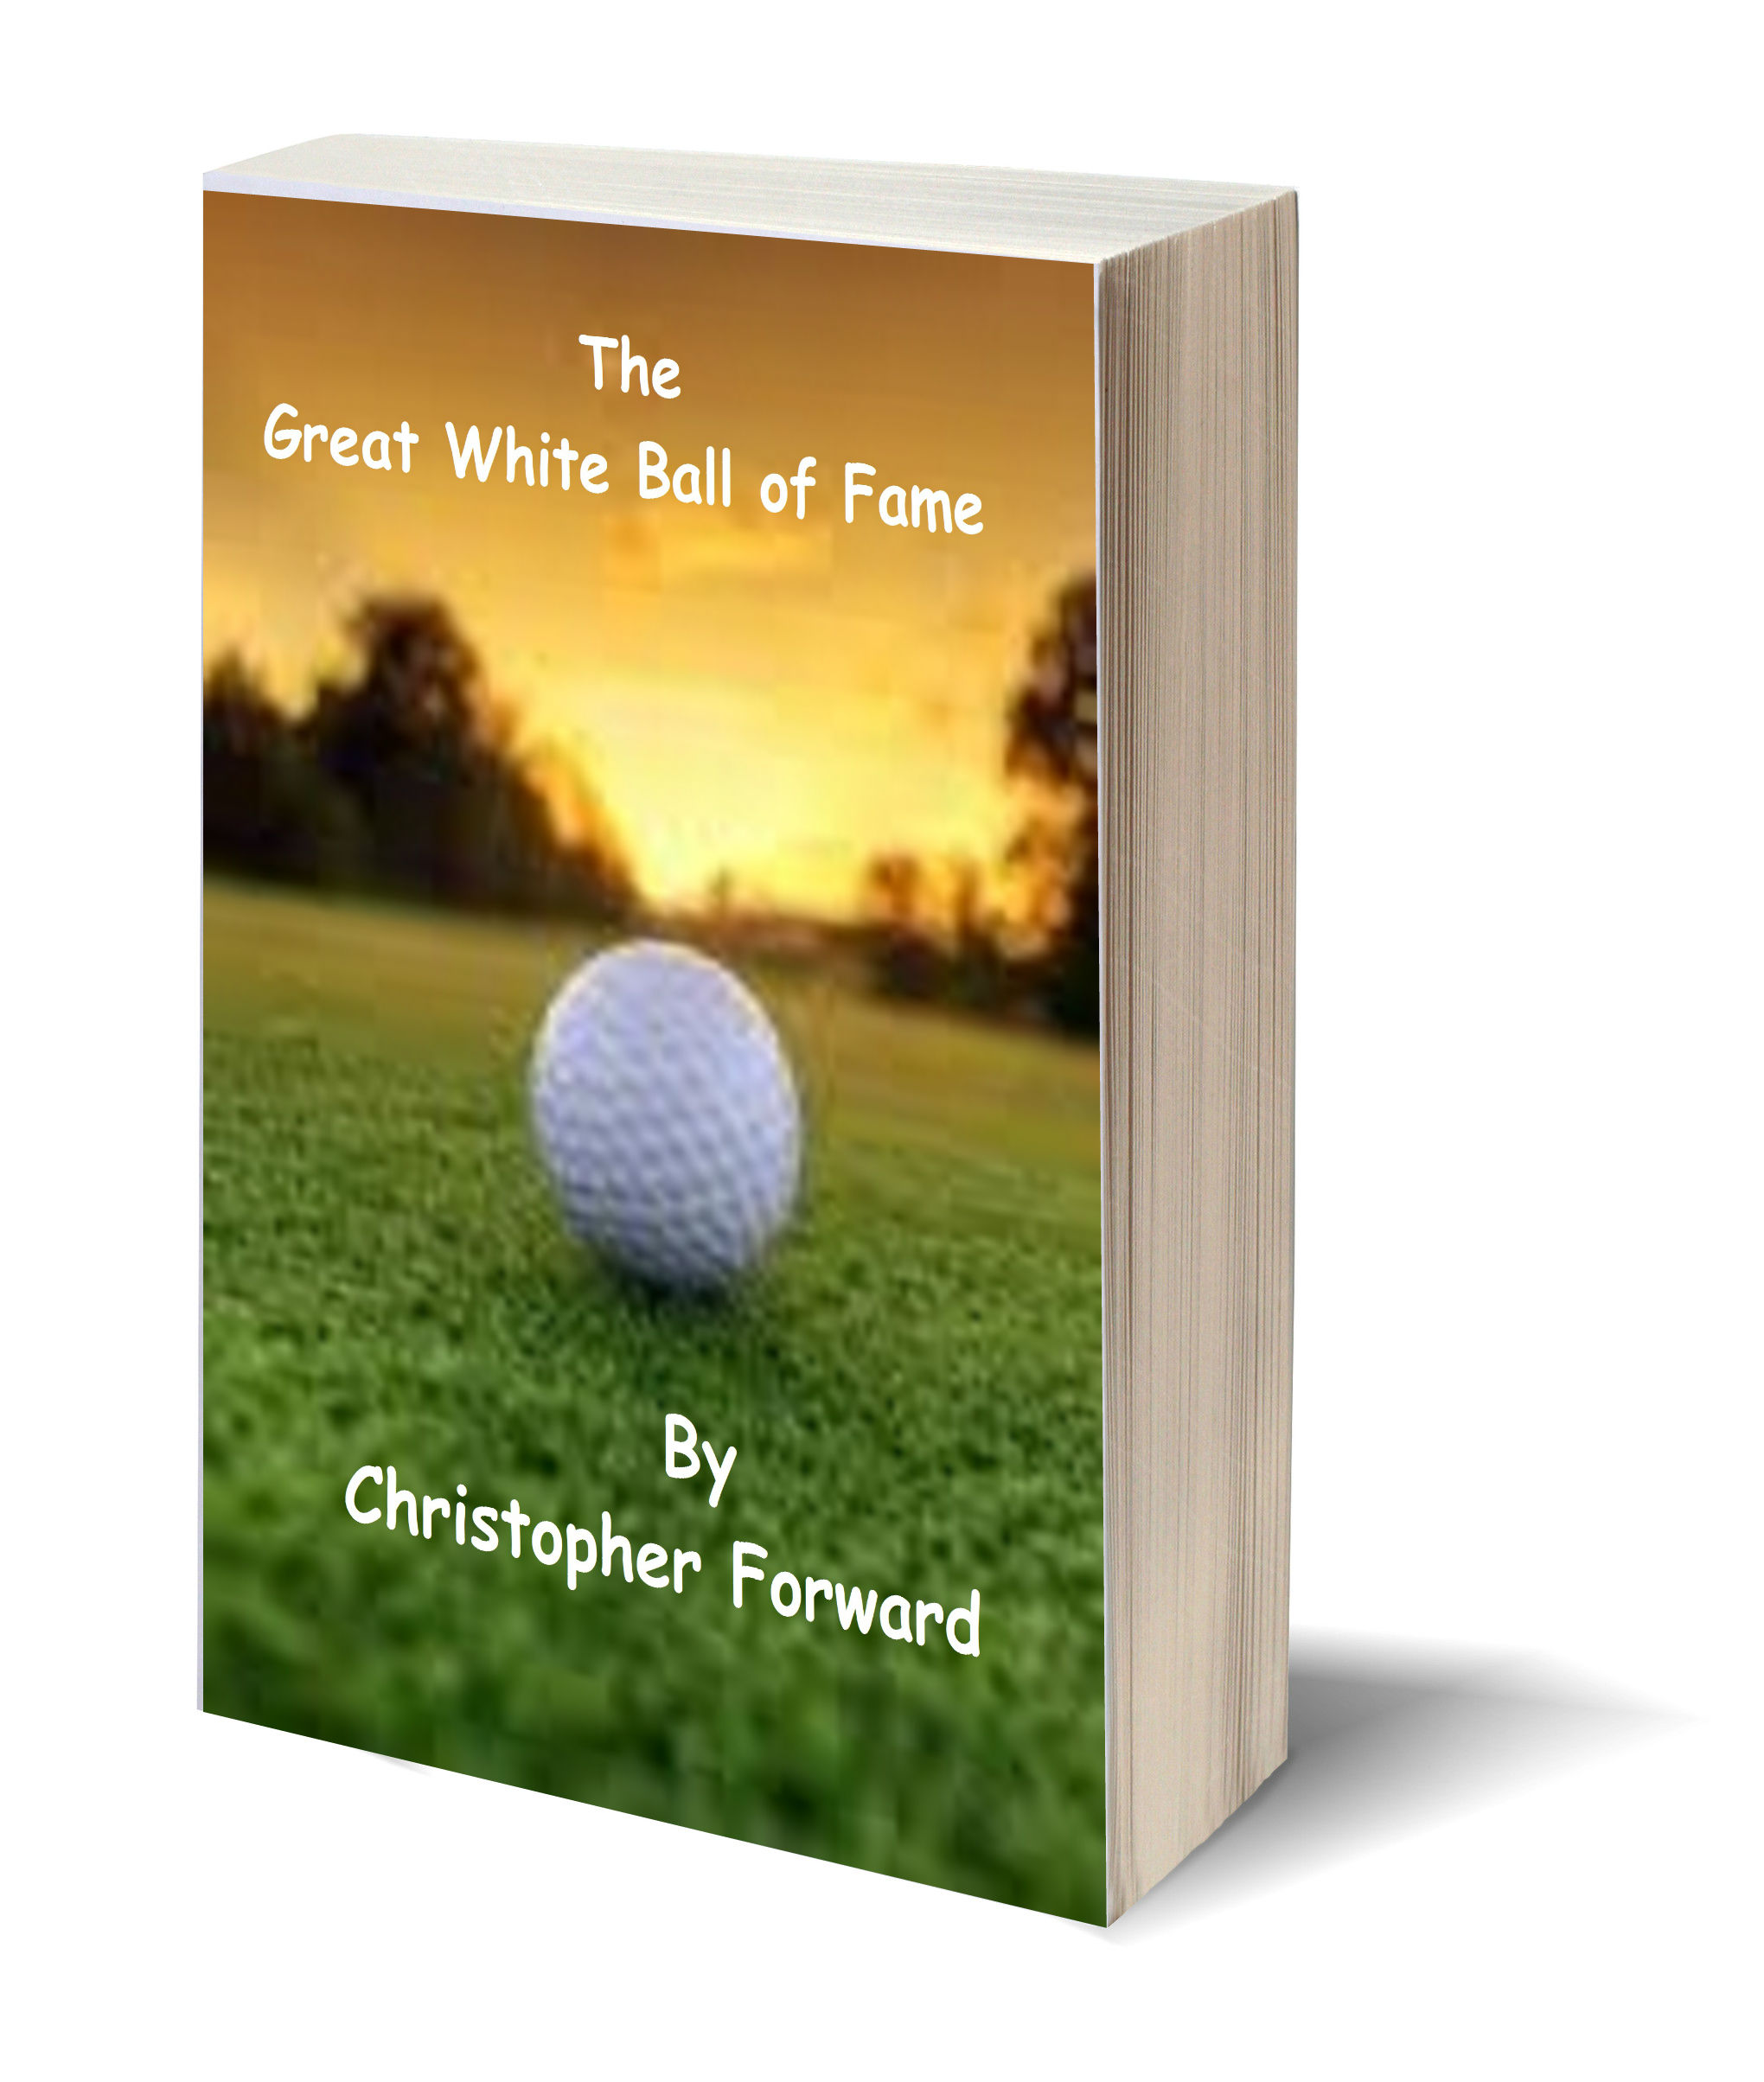 The Great White Ball of Fame 3D-Book-Template.jpg